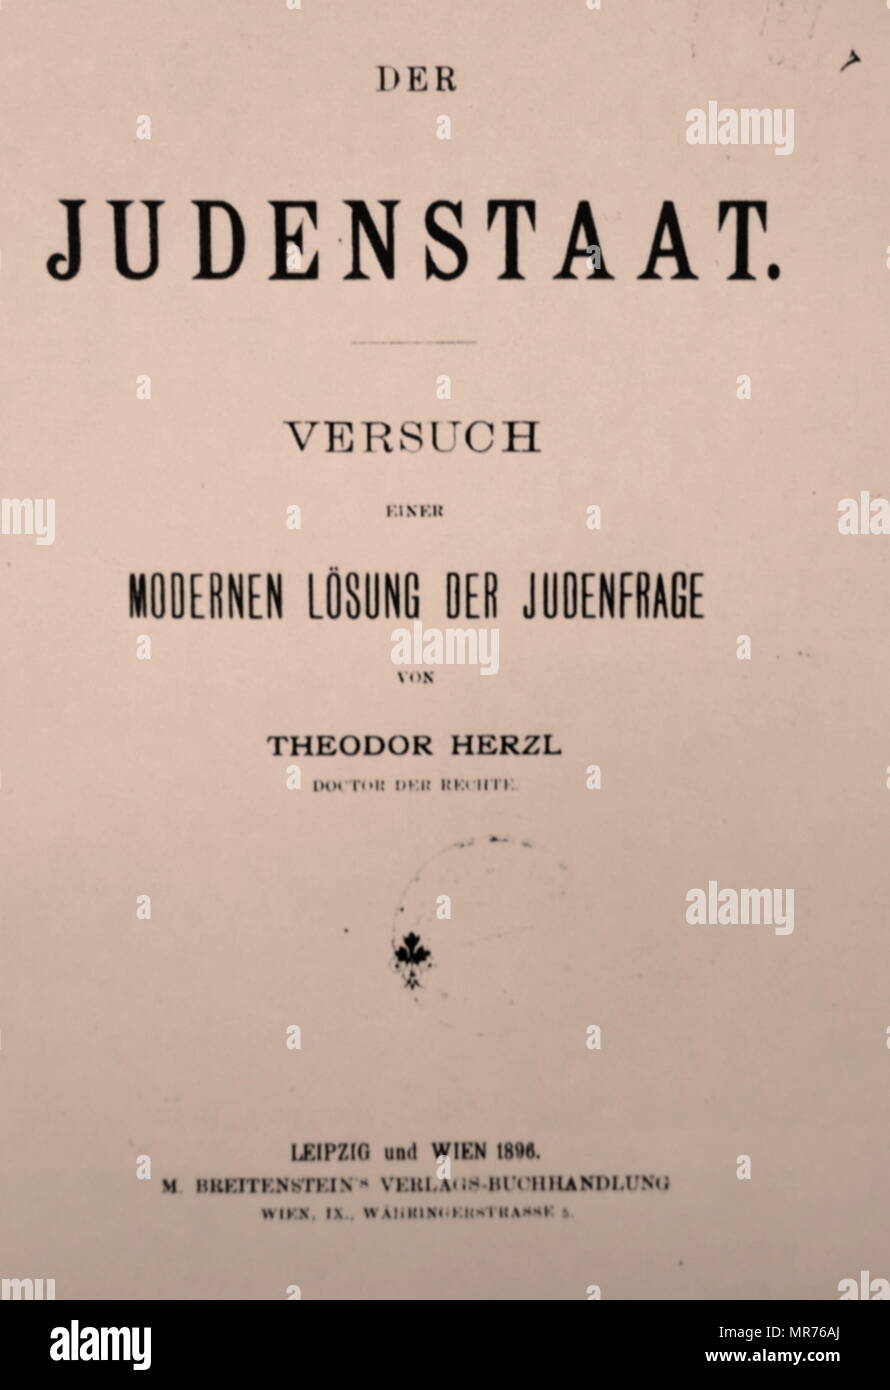 1896 Edition of Der Judenstaat, by Theodor Herzl, the Austro-Hungarian journalist; father of modern political Zionism. Herzl formed the Zionist Organization and promoted Jewish immigration to Palestine in an effort to form a Jewish state. Der Judenstaat (The Jewish State) is a pamphlet written by Herzl and considered one of the most important texts of early Zionism. Herzl envisioned the founding of a future independent Jewish state during the 20th century. He argued that the best way to avoid anti-Semitism in Europe was to create this independent Jewish state. - Stock Image